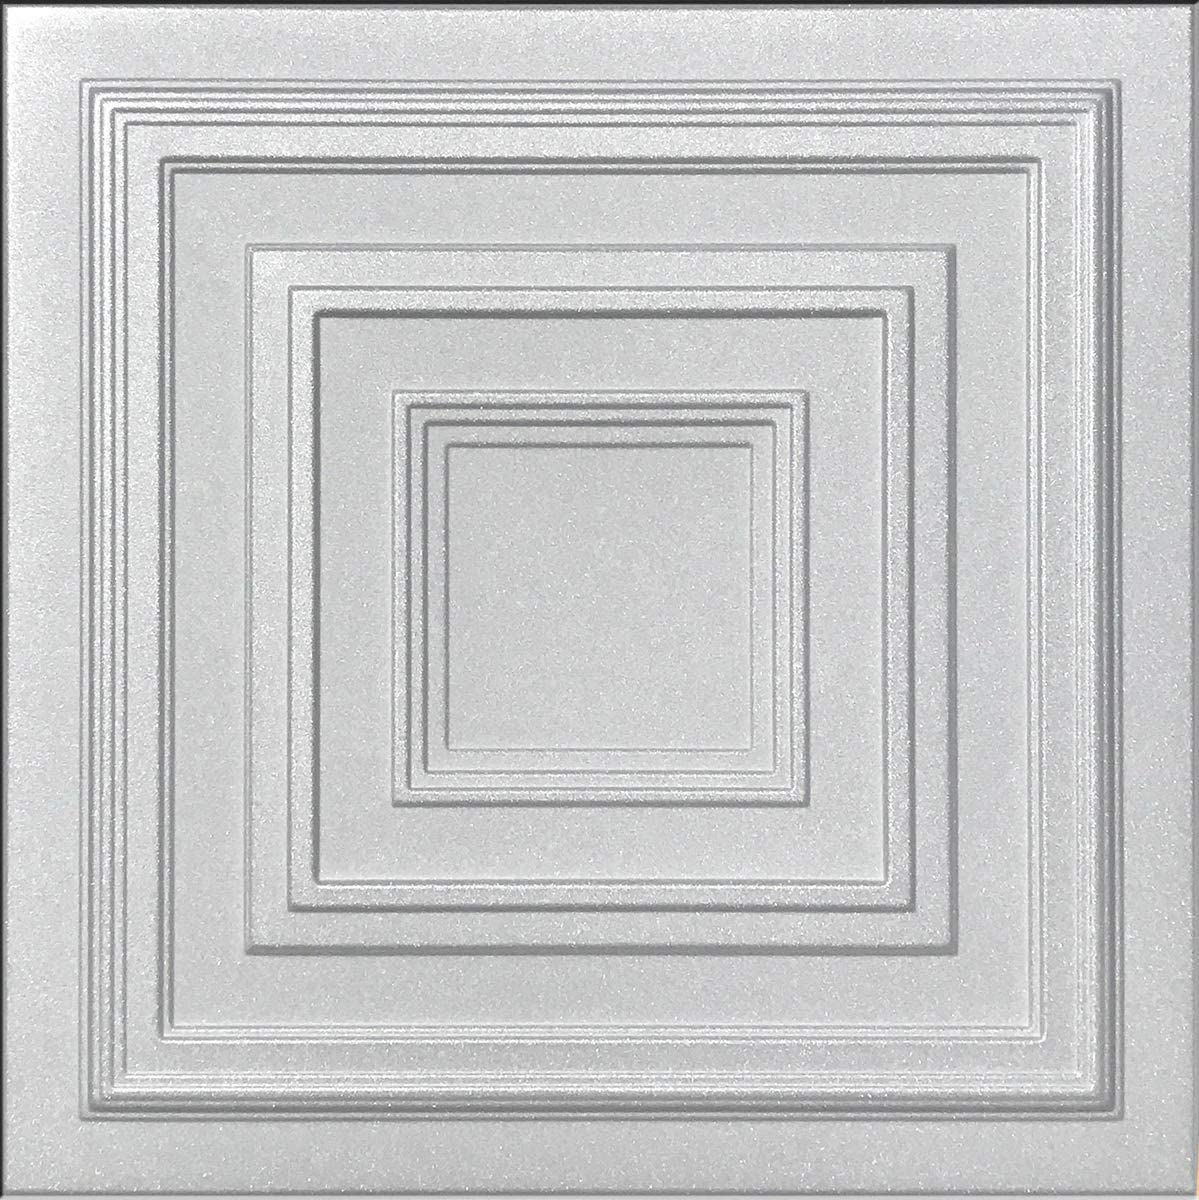 Antyx White Foam Ceiling Tile 100pc Ranking Ranking integrated 1st place TOP20 - Box Decorative